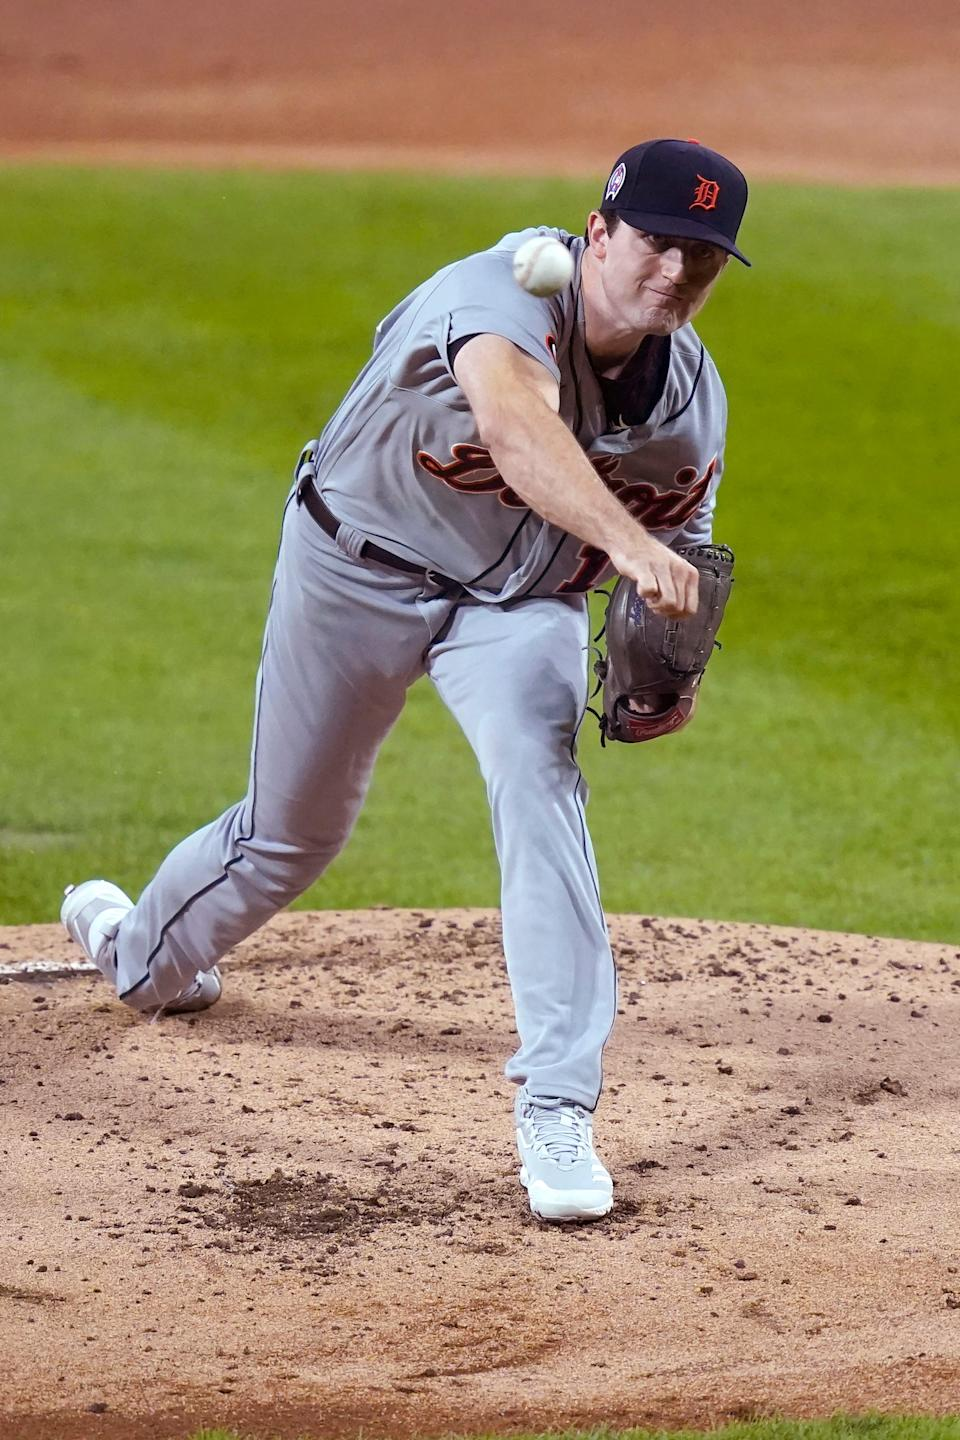 Detroit Tigers starting pitcher Casey Mize delivers during the first inning of a baseball game against the Chicago White Sox on Friday, Sept. 11, 2020, in Chicago.